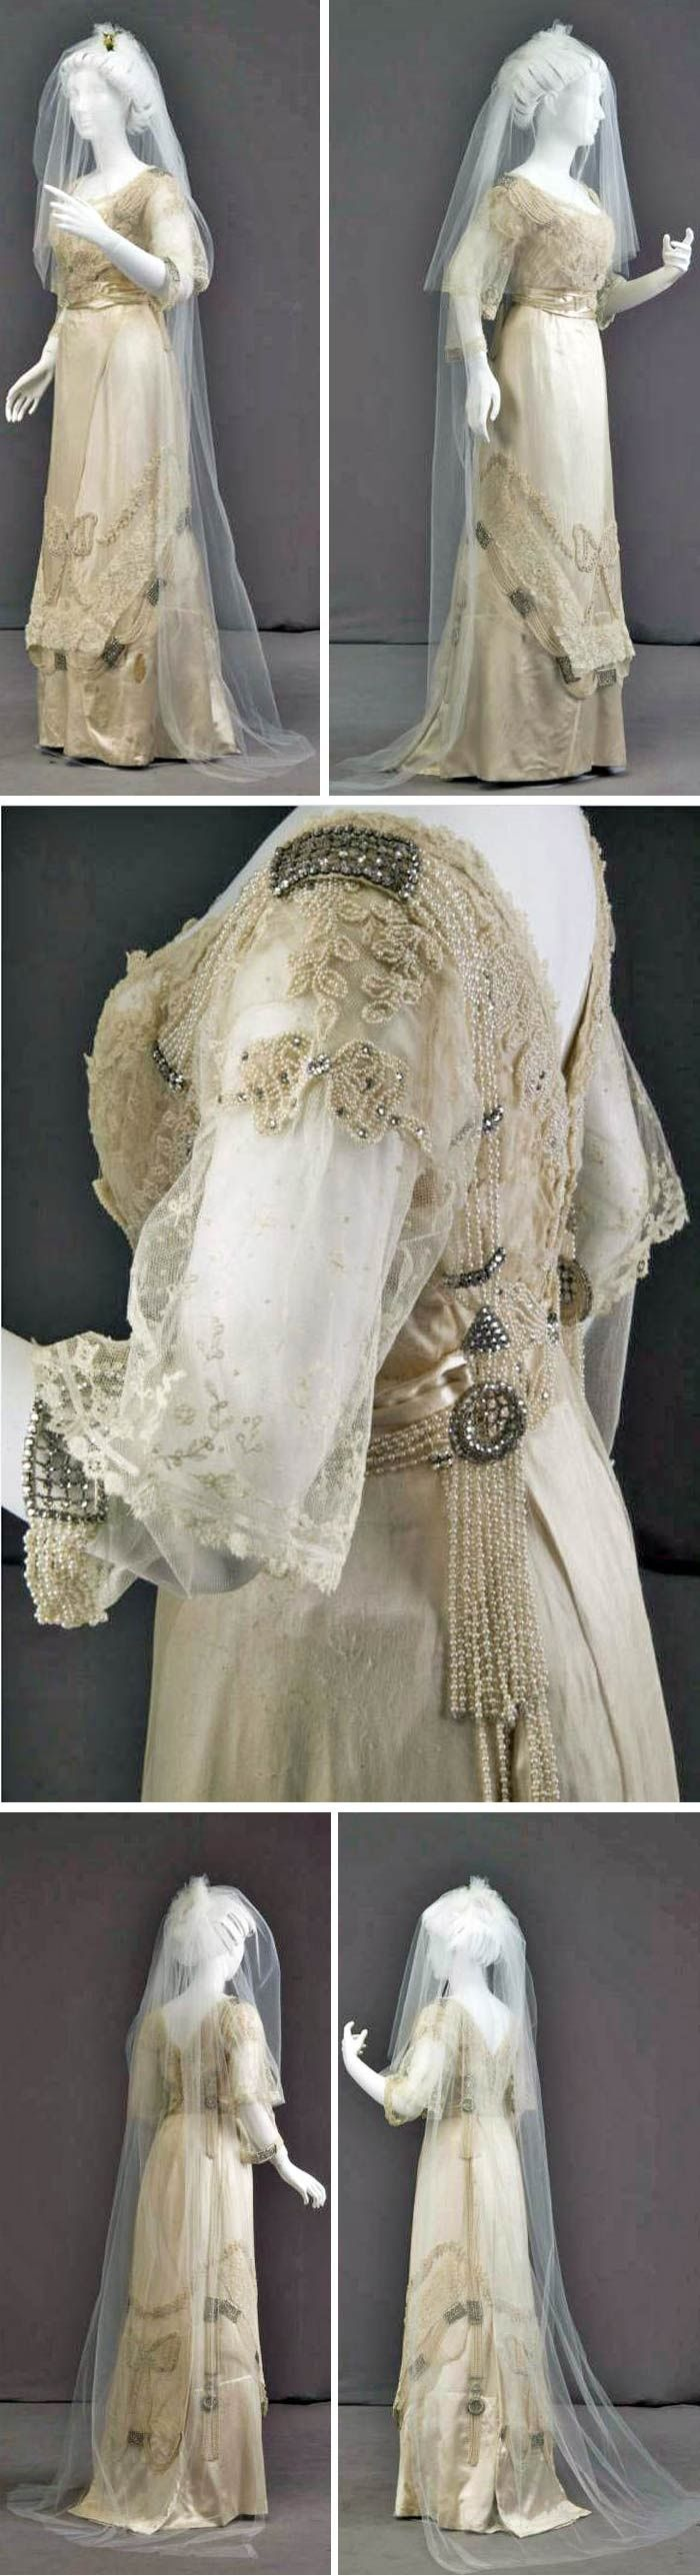 12 Piece Wedding Ensemble, Louise Loomis Burrell, Little Falls, NY from 1868 | Wedding dress, Marshall Field & Co., Chicago, 1911.